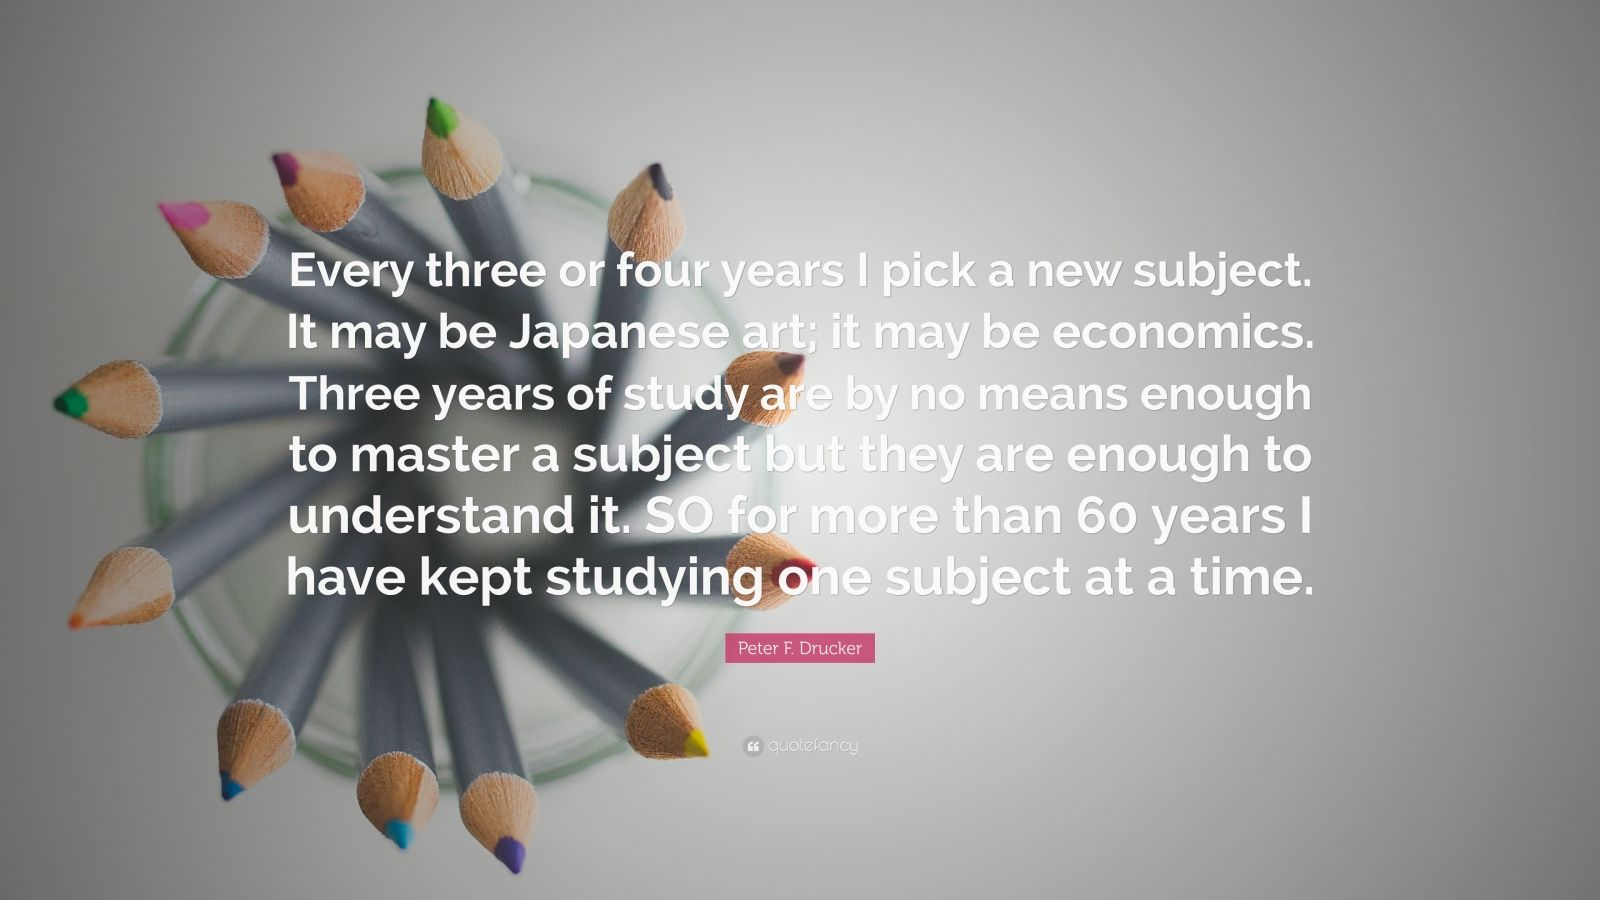 "Peter F. Drucker Quote: ""Every three or four years I pick a new subject. It may be Japanese art; it may be economics. Three years of study are by no means enough to master a subject but they are enough to understand it. SO for more than 60 years I have kept studying one subject at a time."""